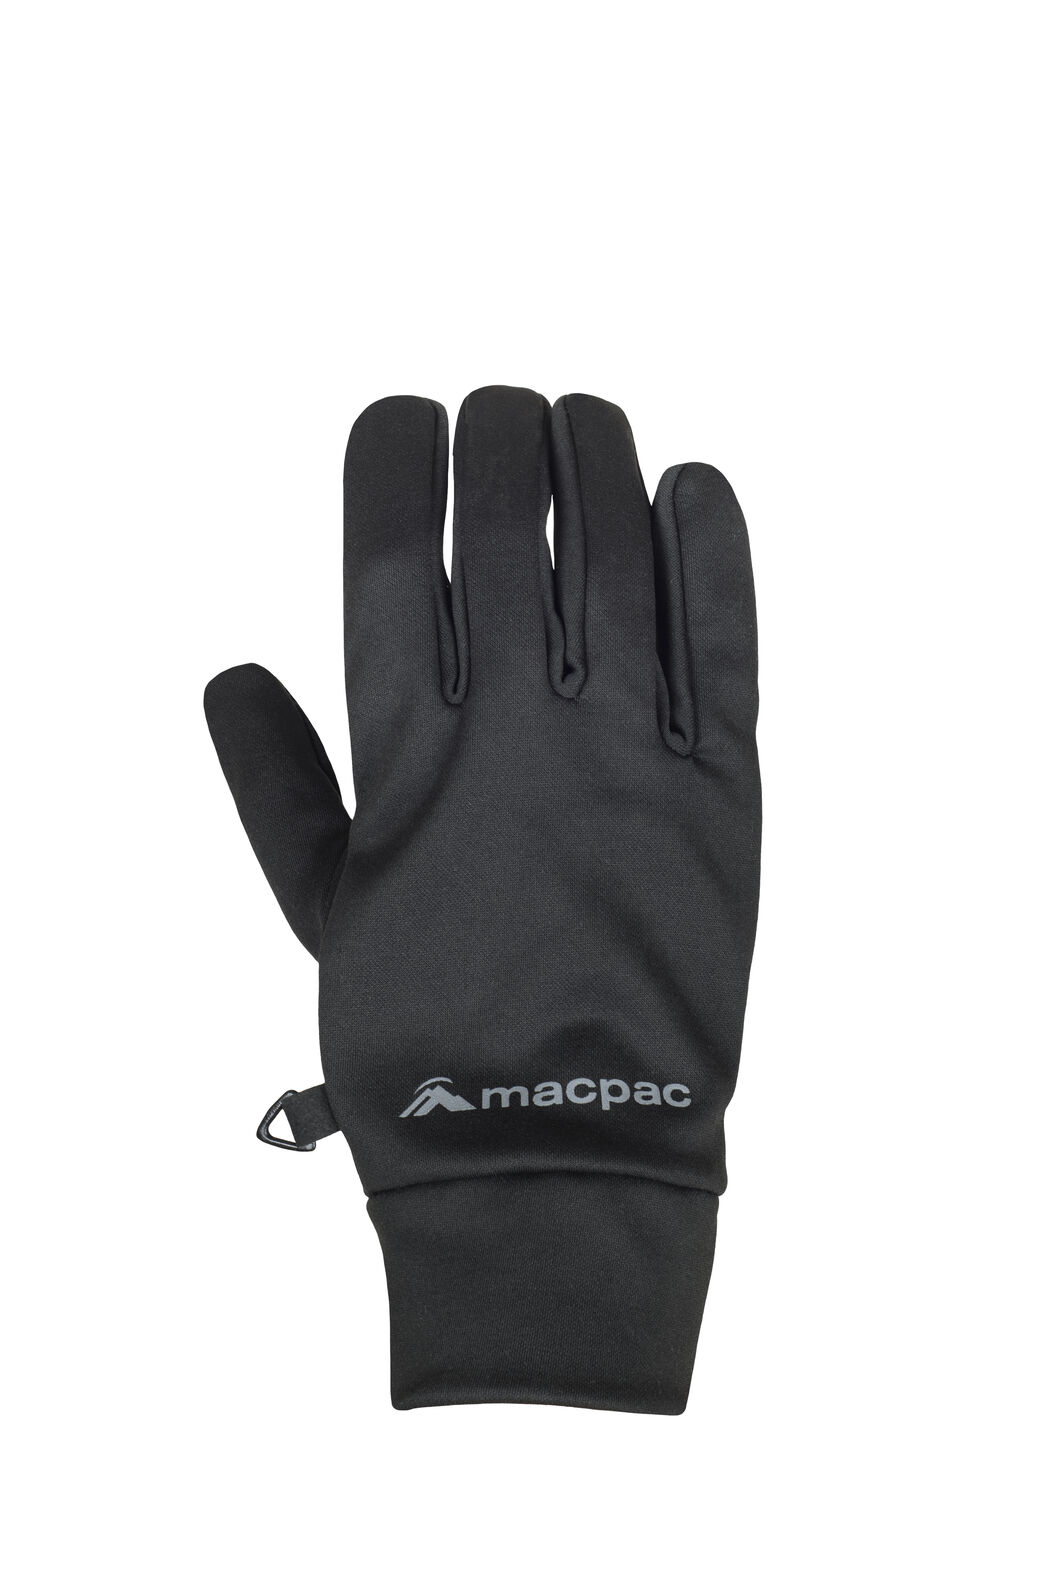 Macpac Stretch Gloves, Black, hi-res